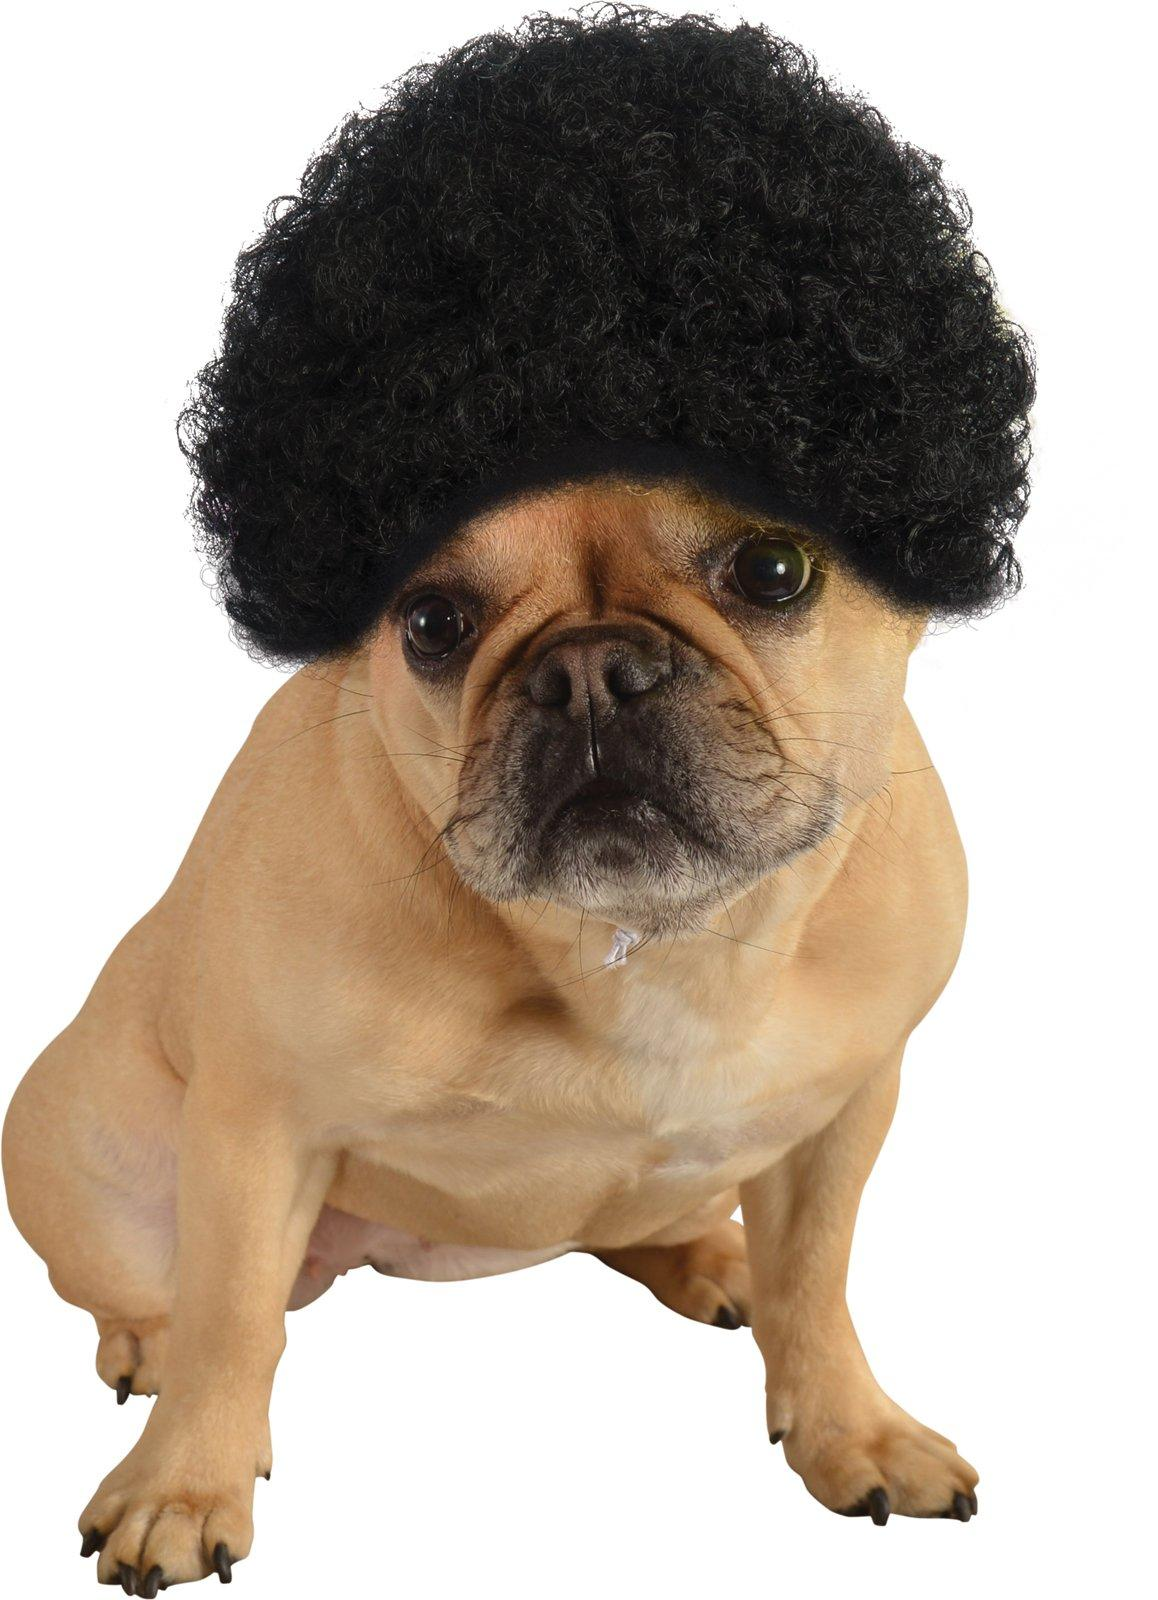 Top 10 Tuesdays Dog Costumes  sc 1 st  BuyCostumes.com & Top 10 Tuesdays: Dog Costumes - Halloween Costume Ideas